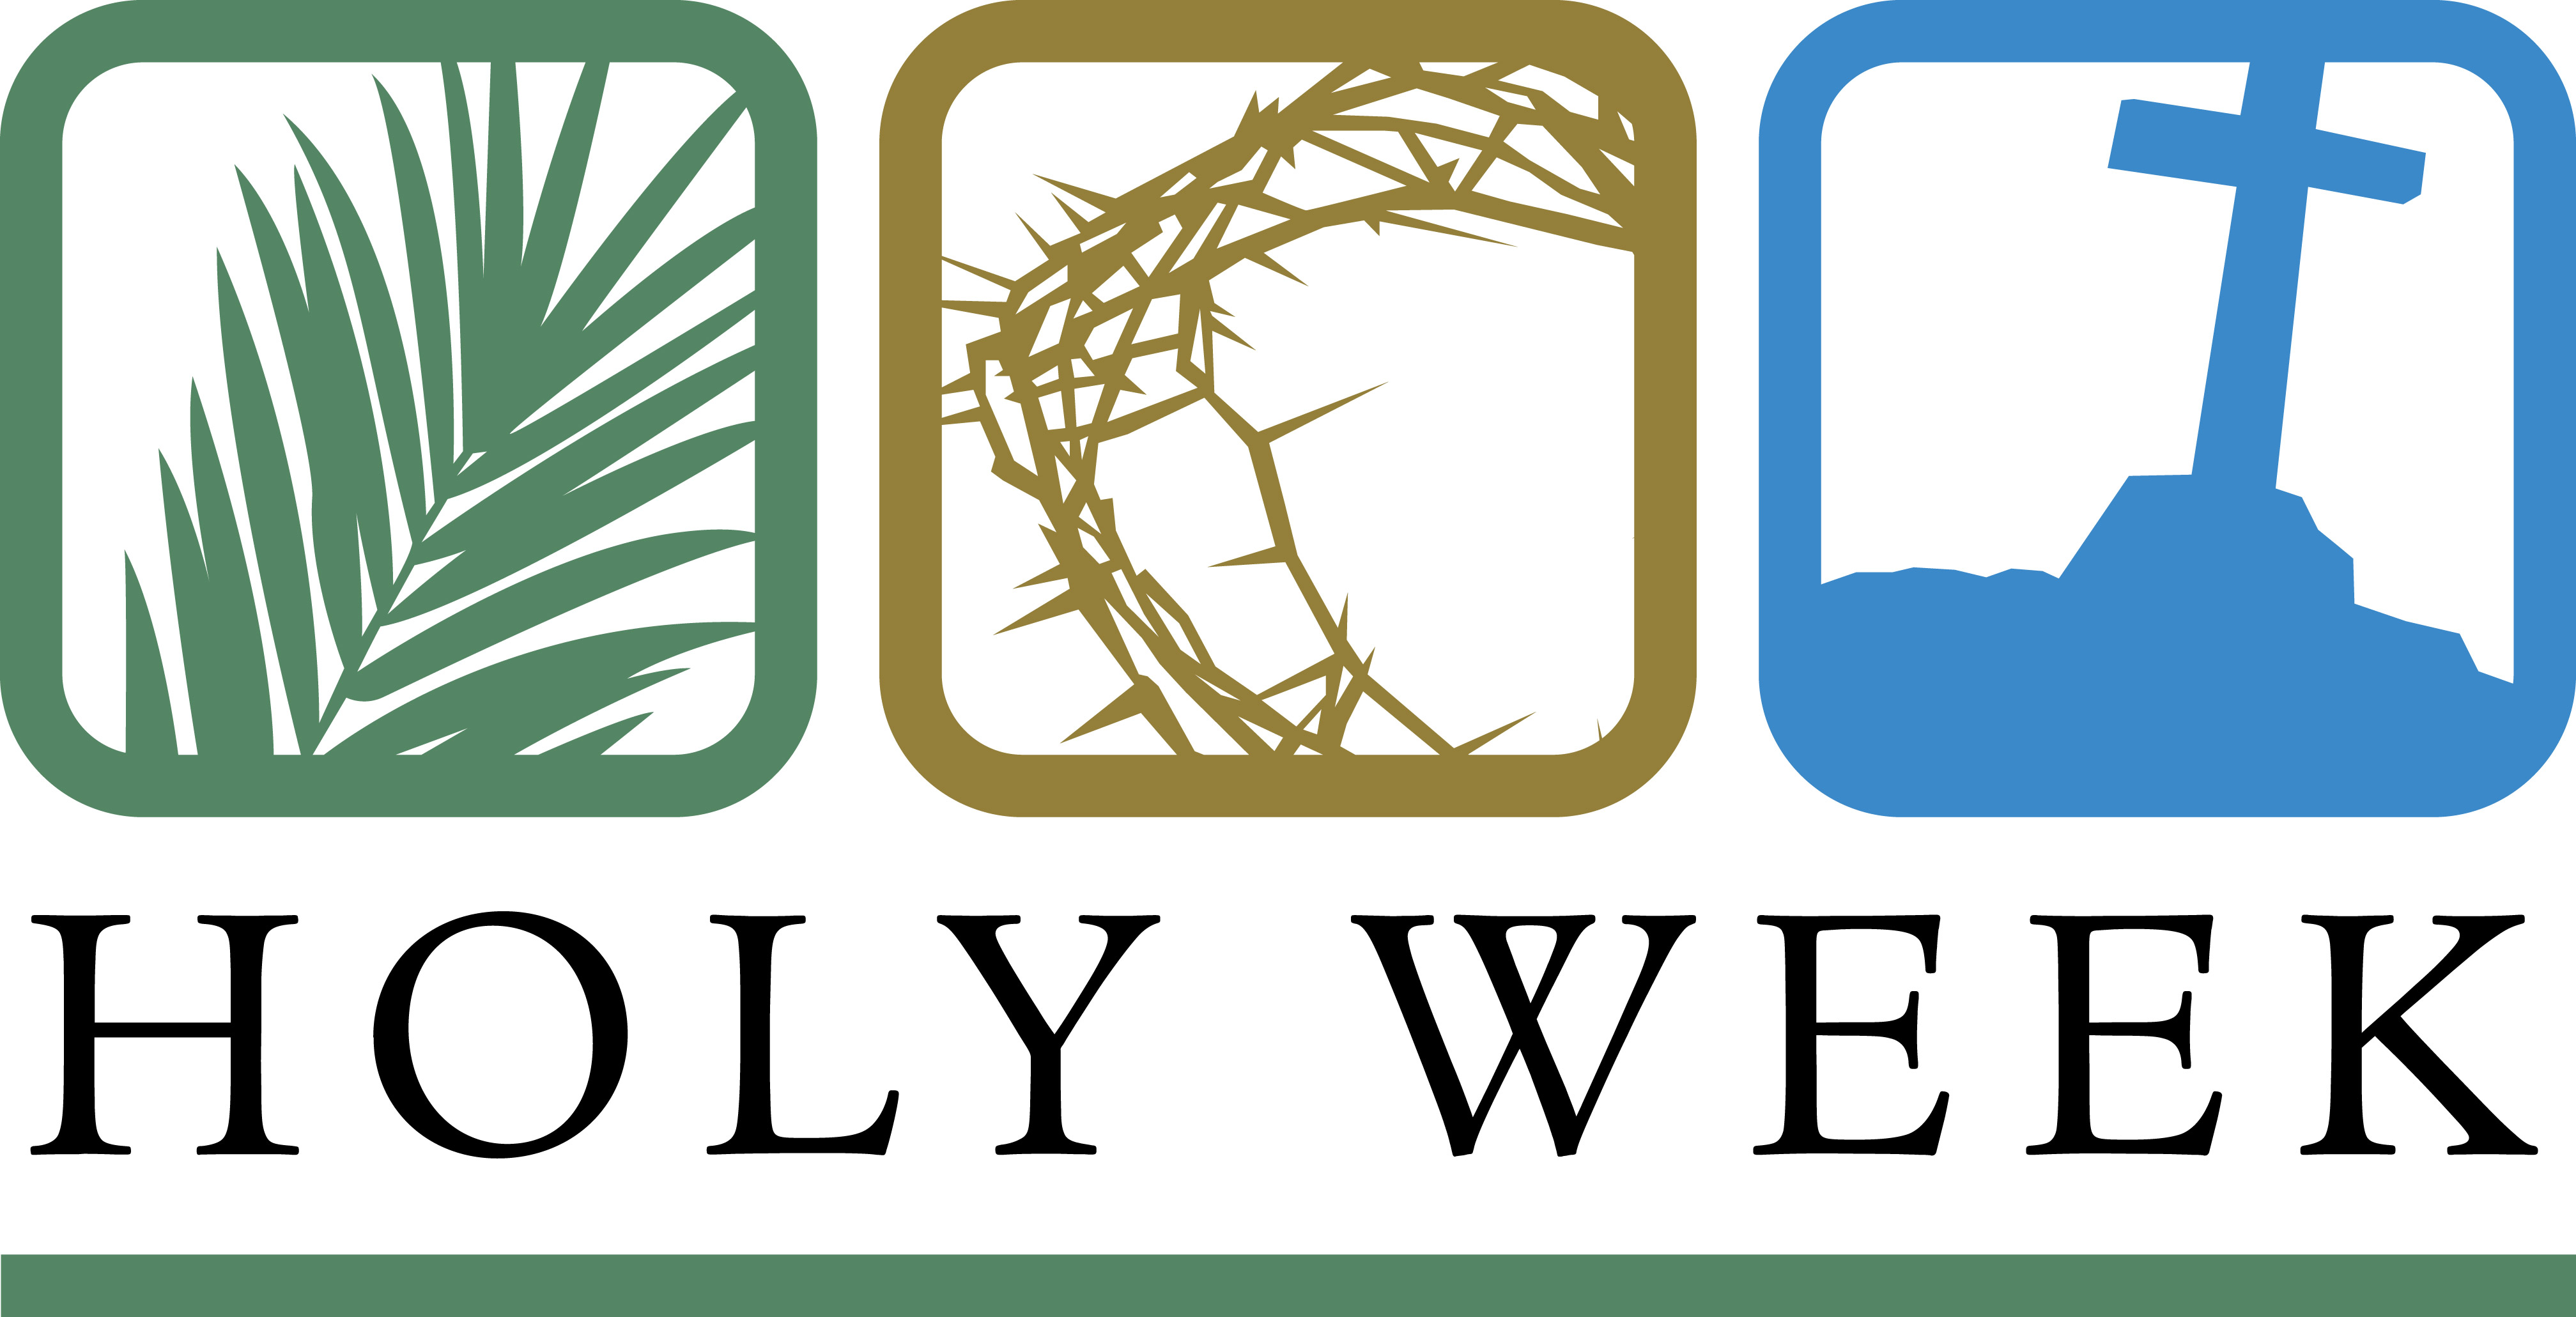 Holy week clipart. Free cliparts download clip